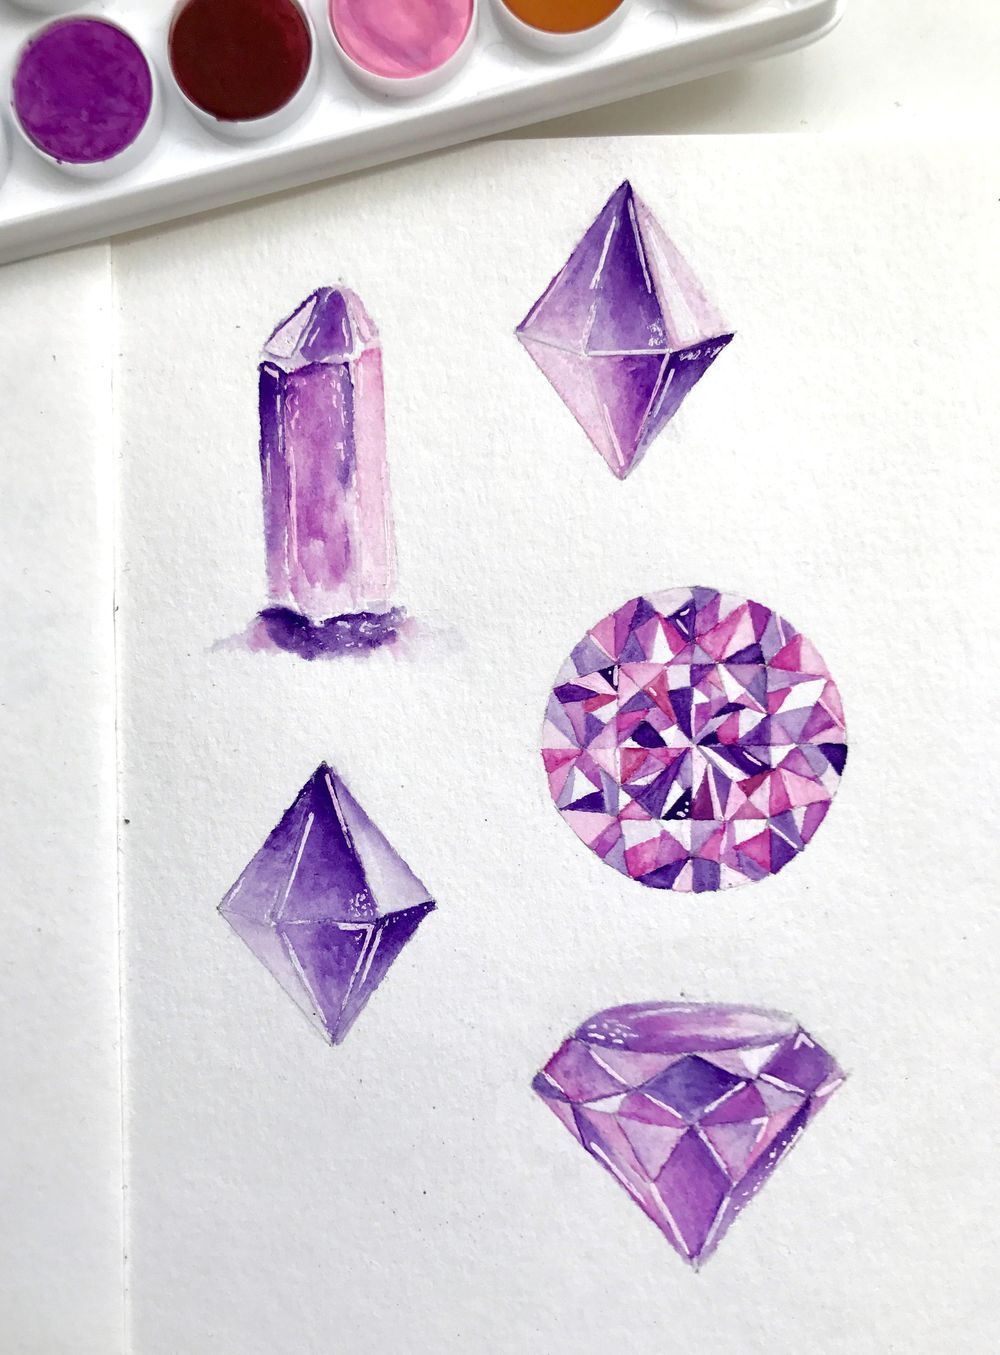 Crystals & Gems - image 1 - student project